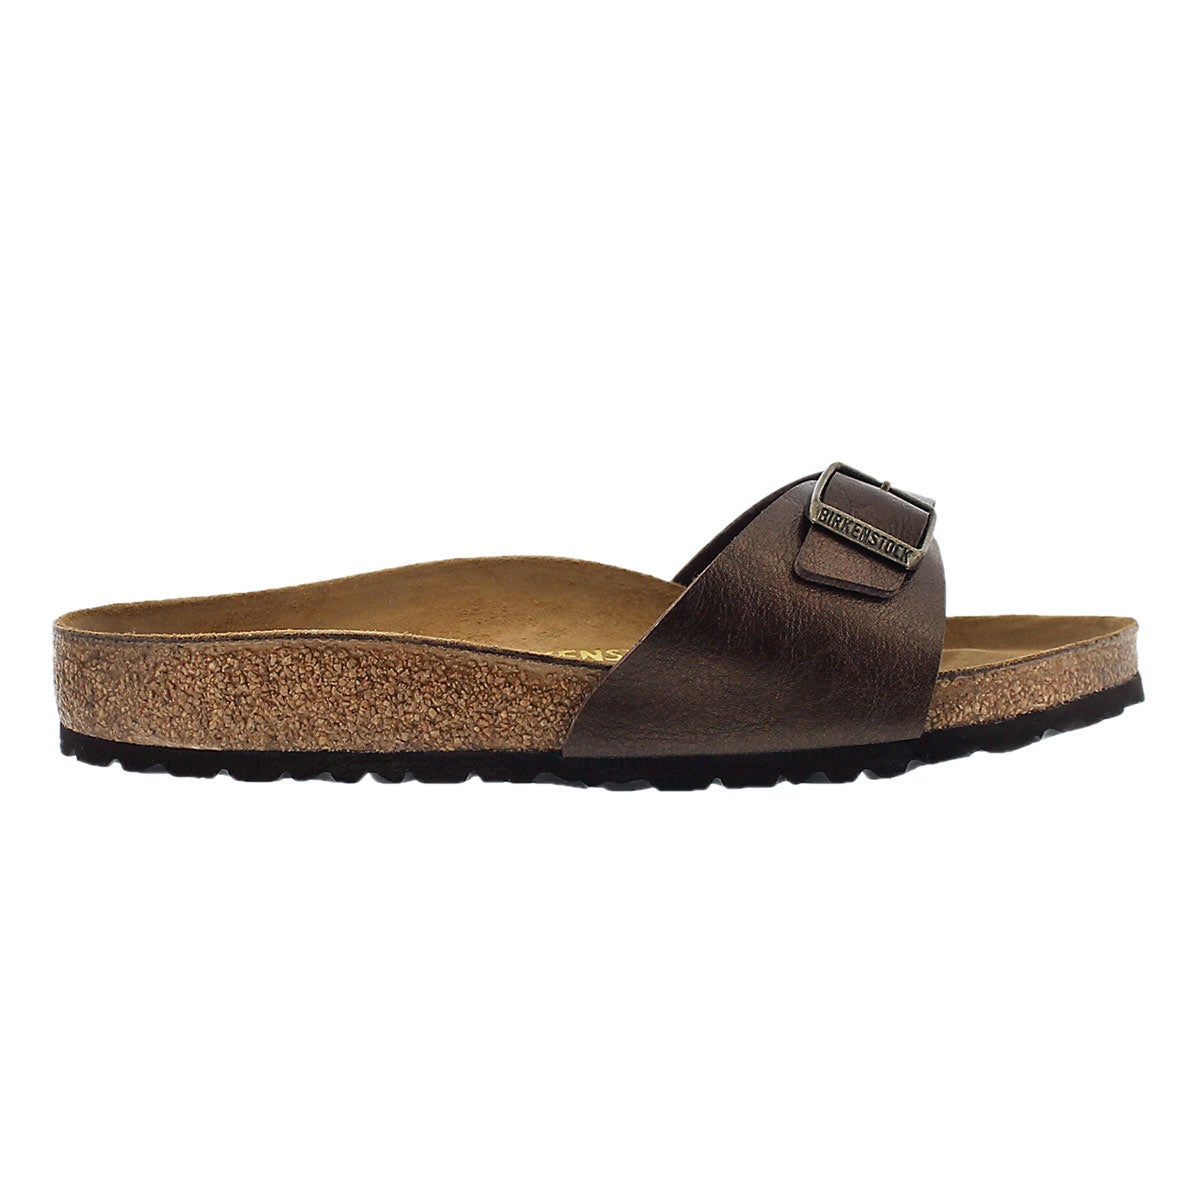 Lds Madrid BF toffee 1 strap sandal